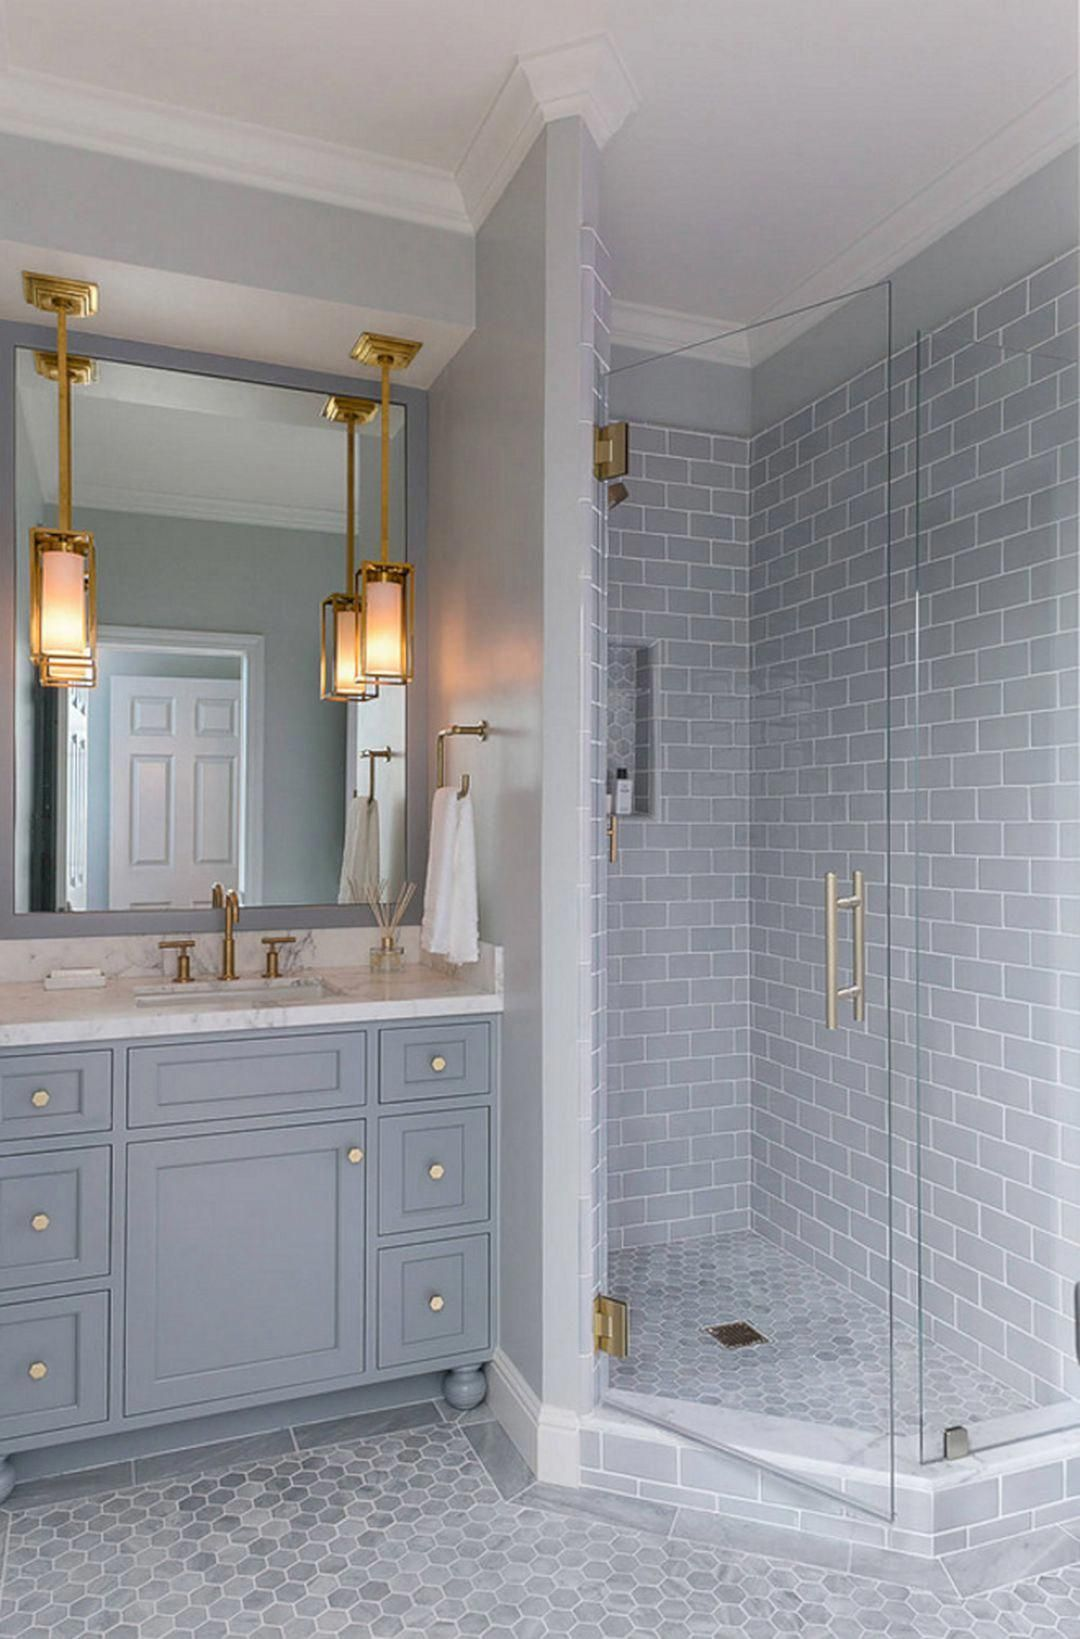 Take a look at this approach for something else altogether. Small Bathroom Renovation Ideas #restroomremodel